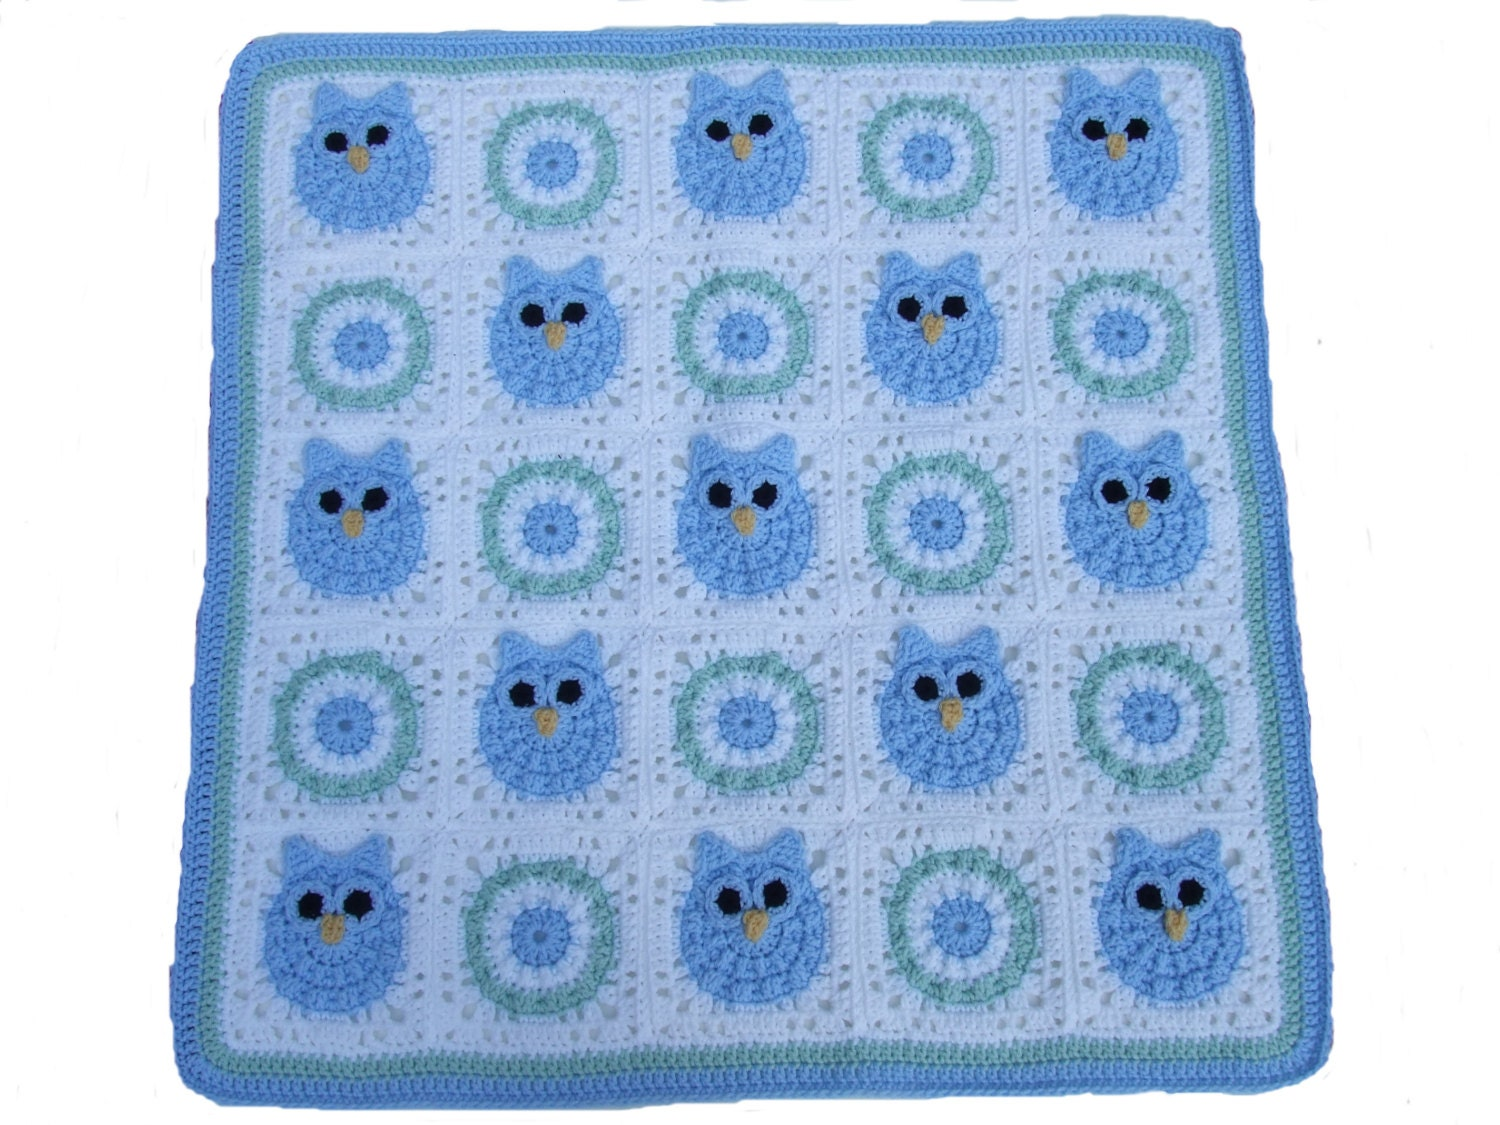 Crochet Pattern Owl Baby Blanket Digital by CrochetVillage on Etsy